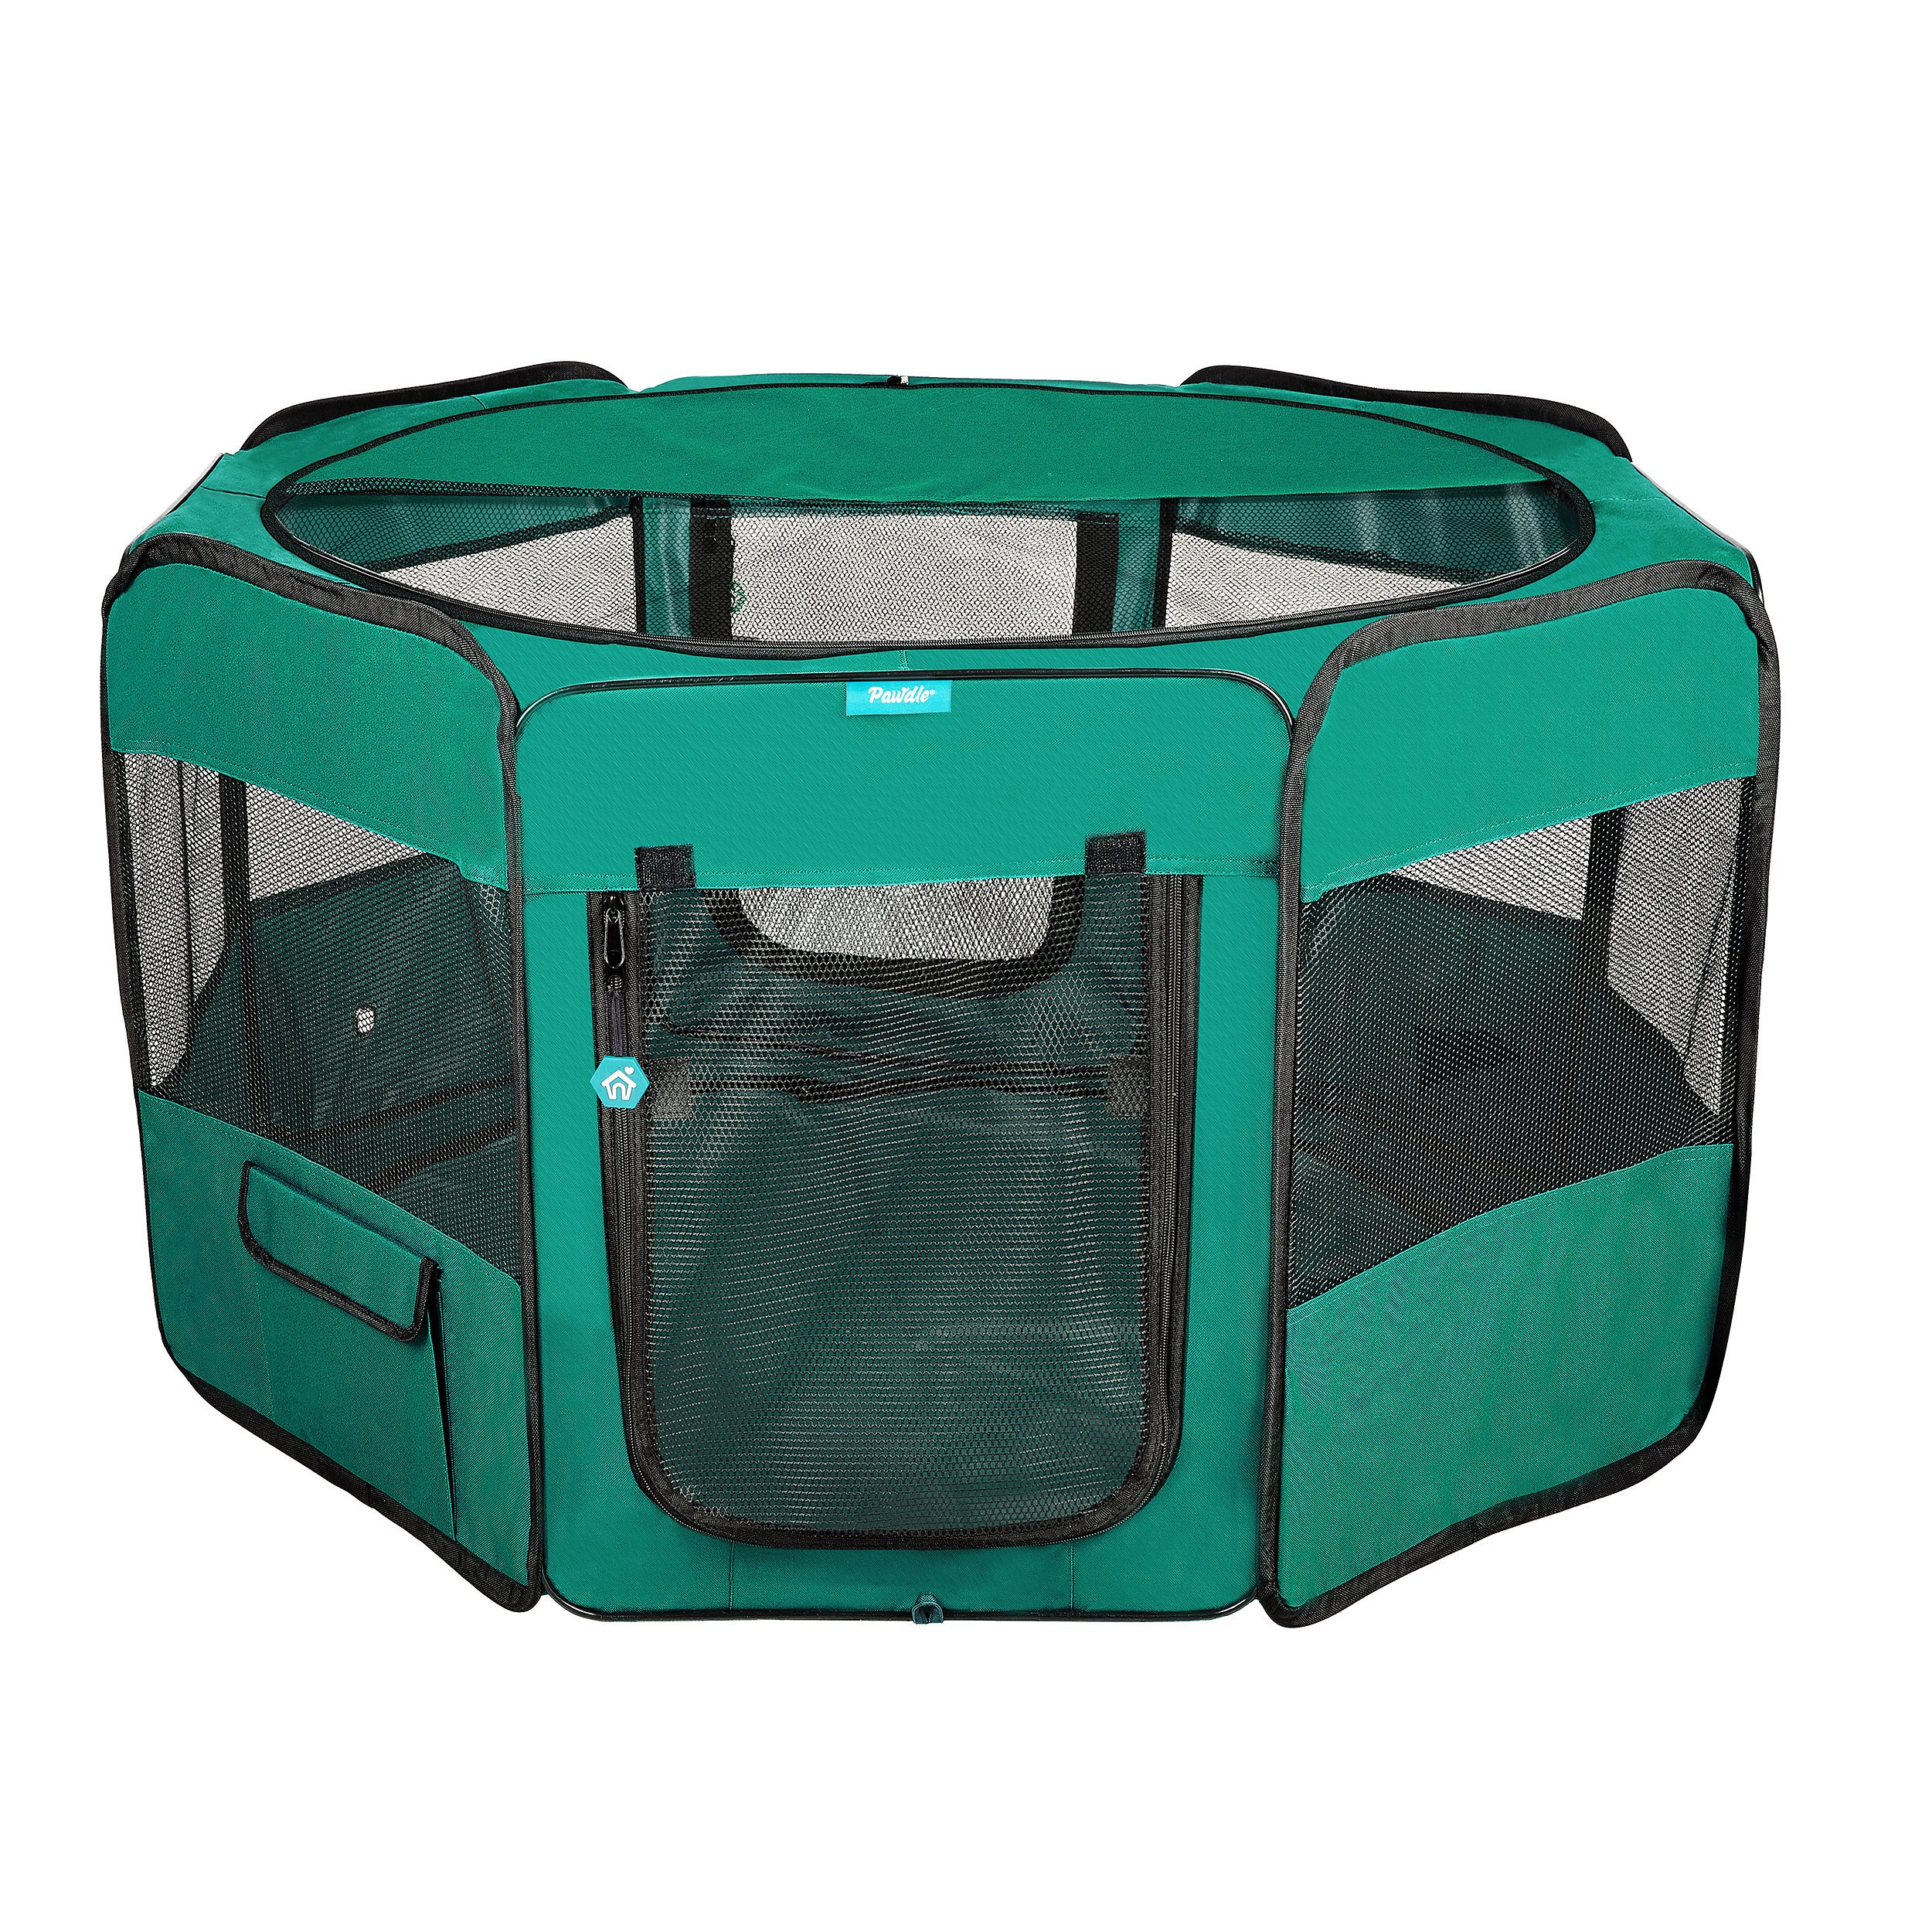 Deluxe Premium Pet Dog Playpen Portable Soft Dog Exercise Pen Kennel with Carry Bag for Dogs, Cats, Kittens, and All Pets (Large, Green) by Pawdle